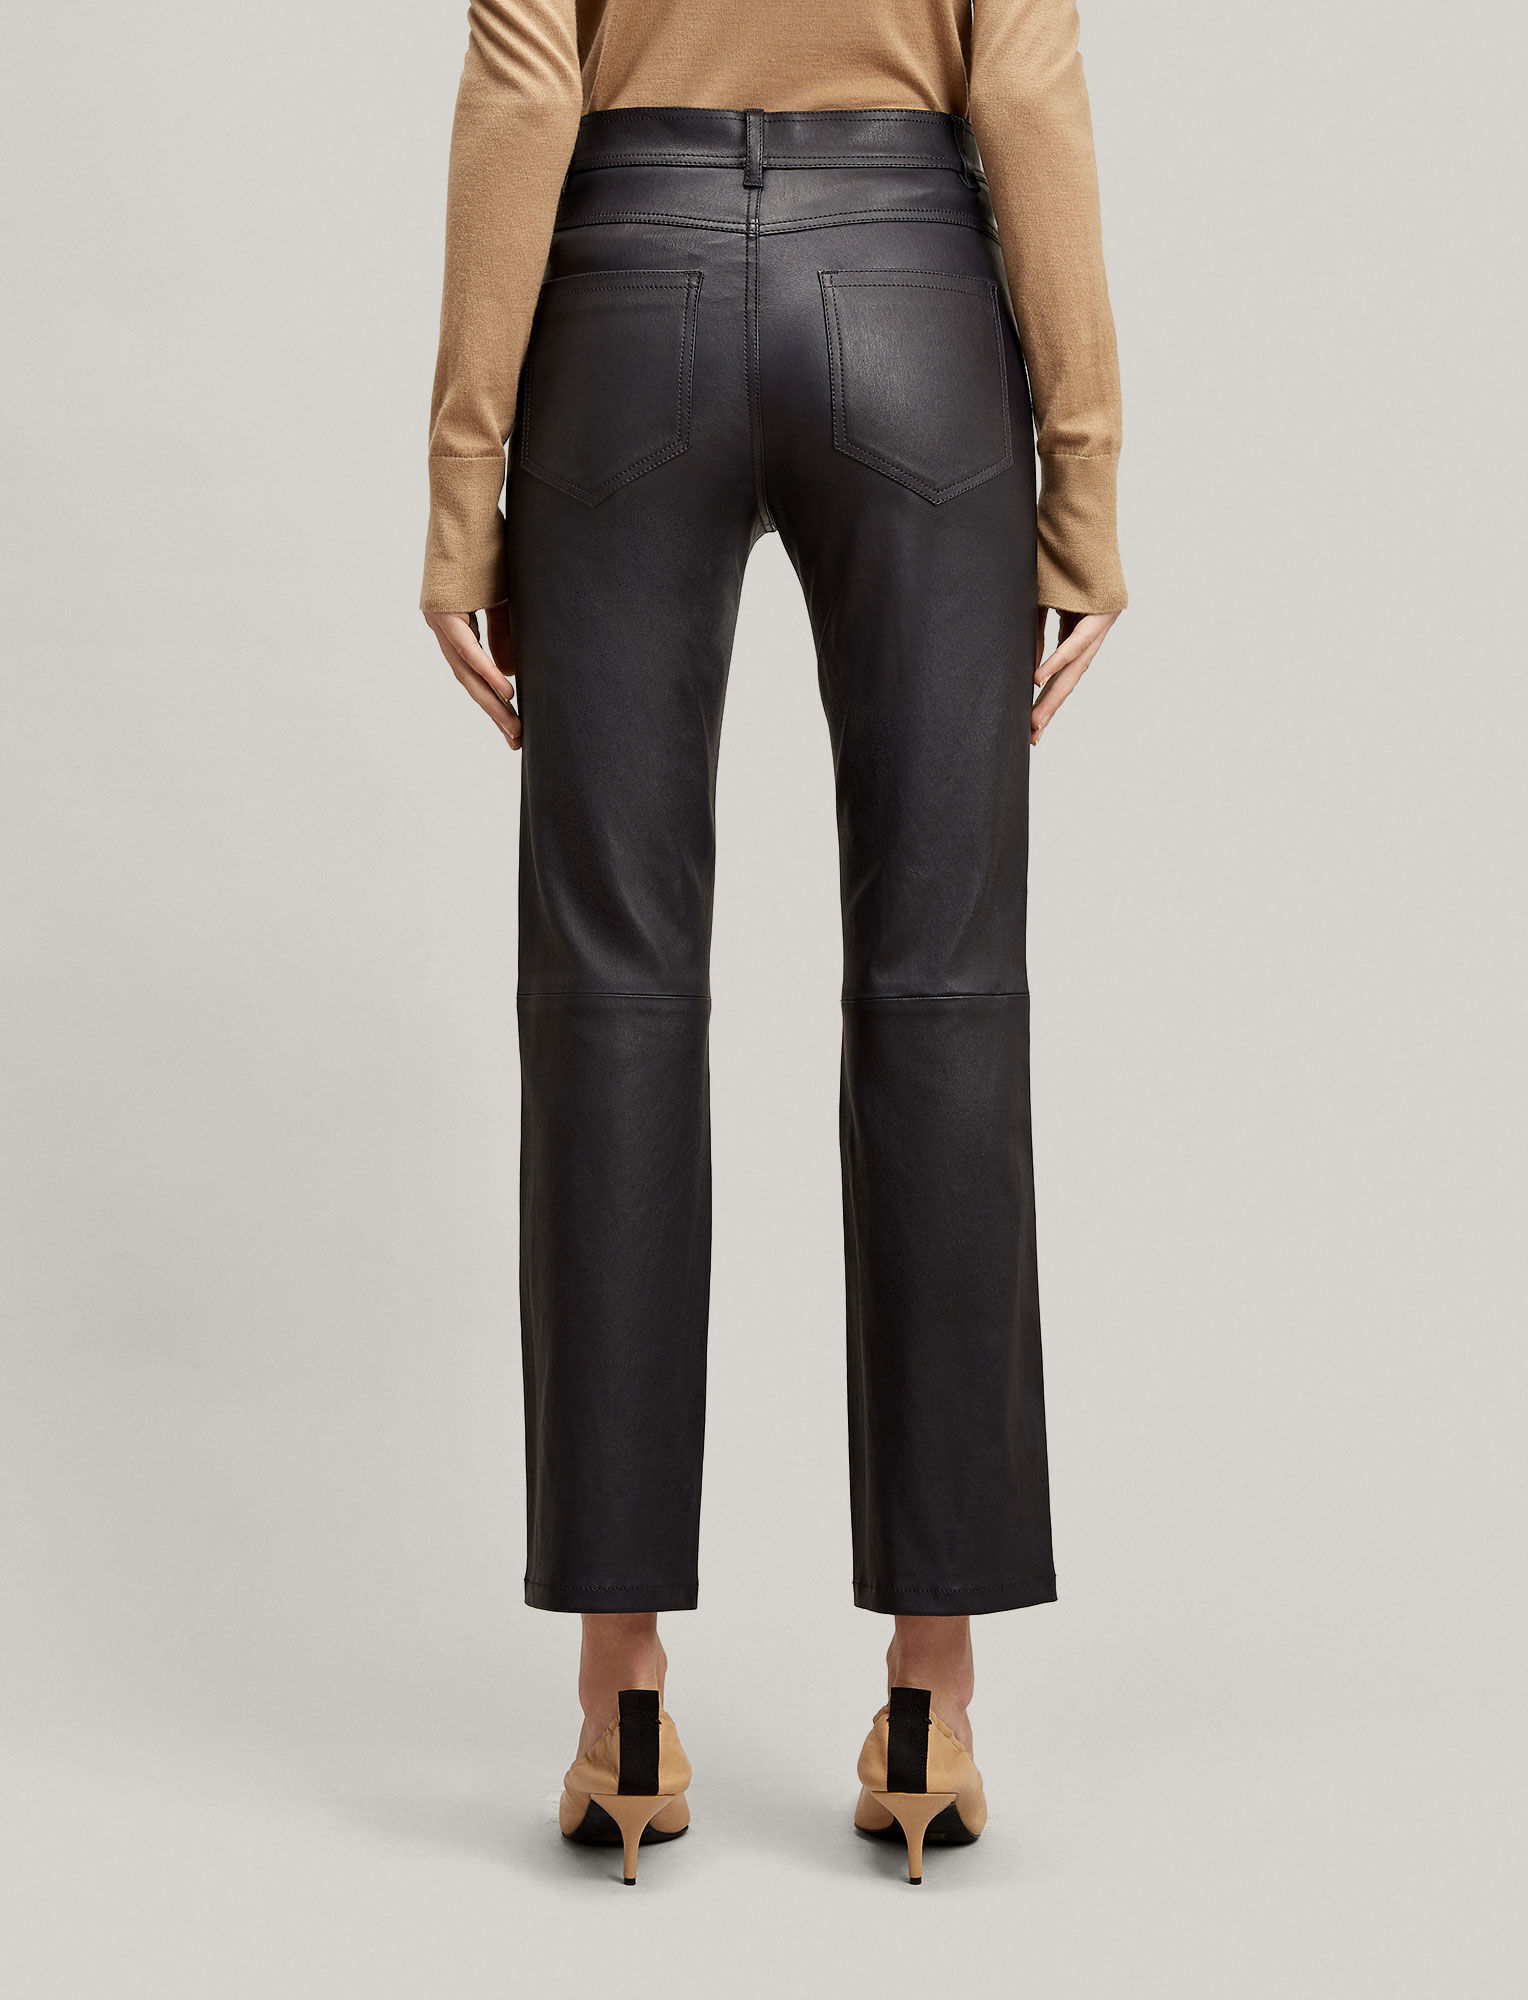 Joseph, Pantalon Den en cuir stretch, in NAVY